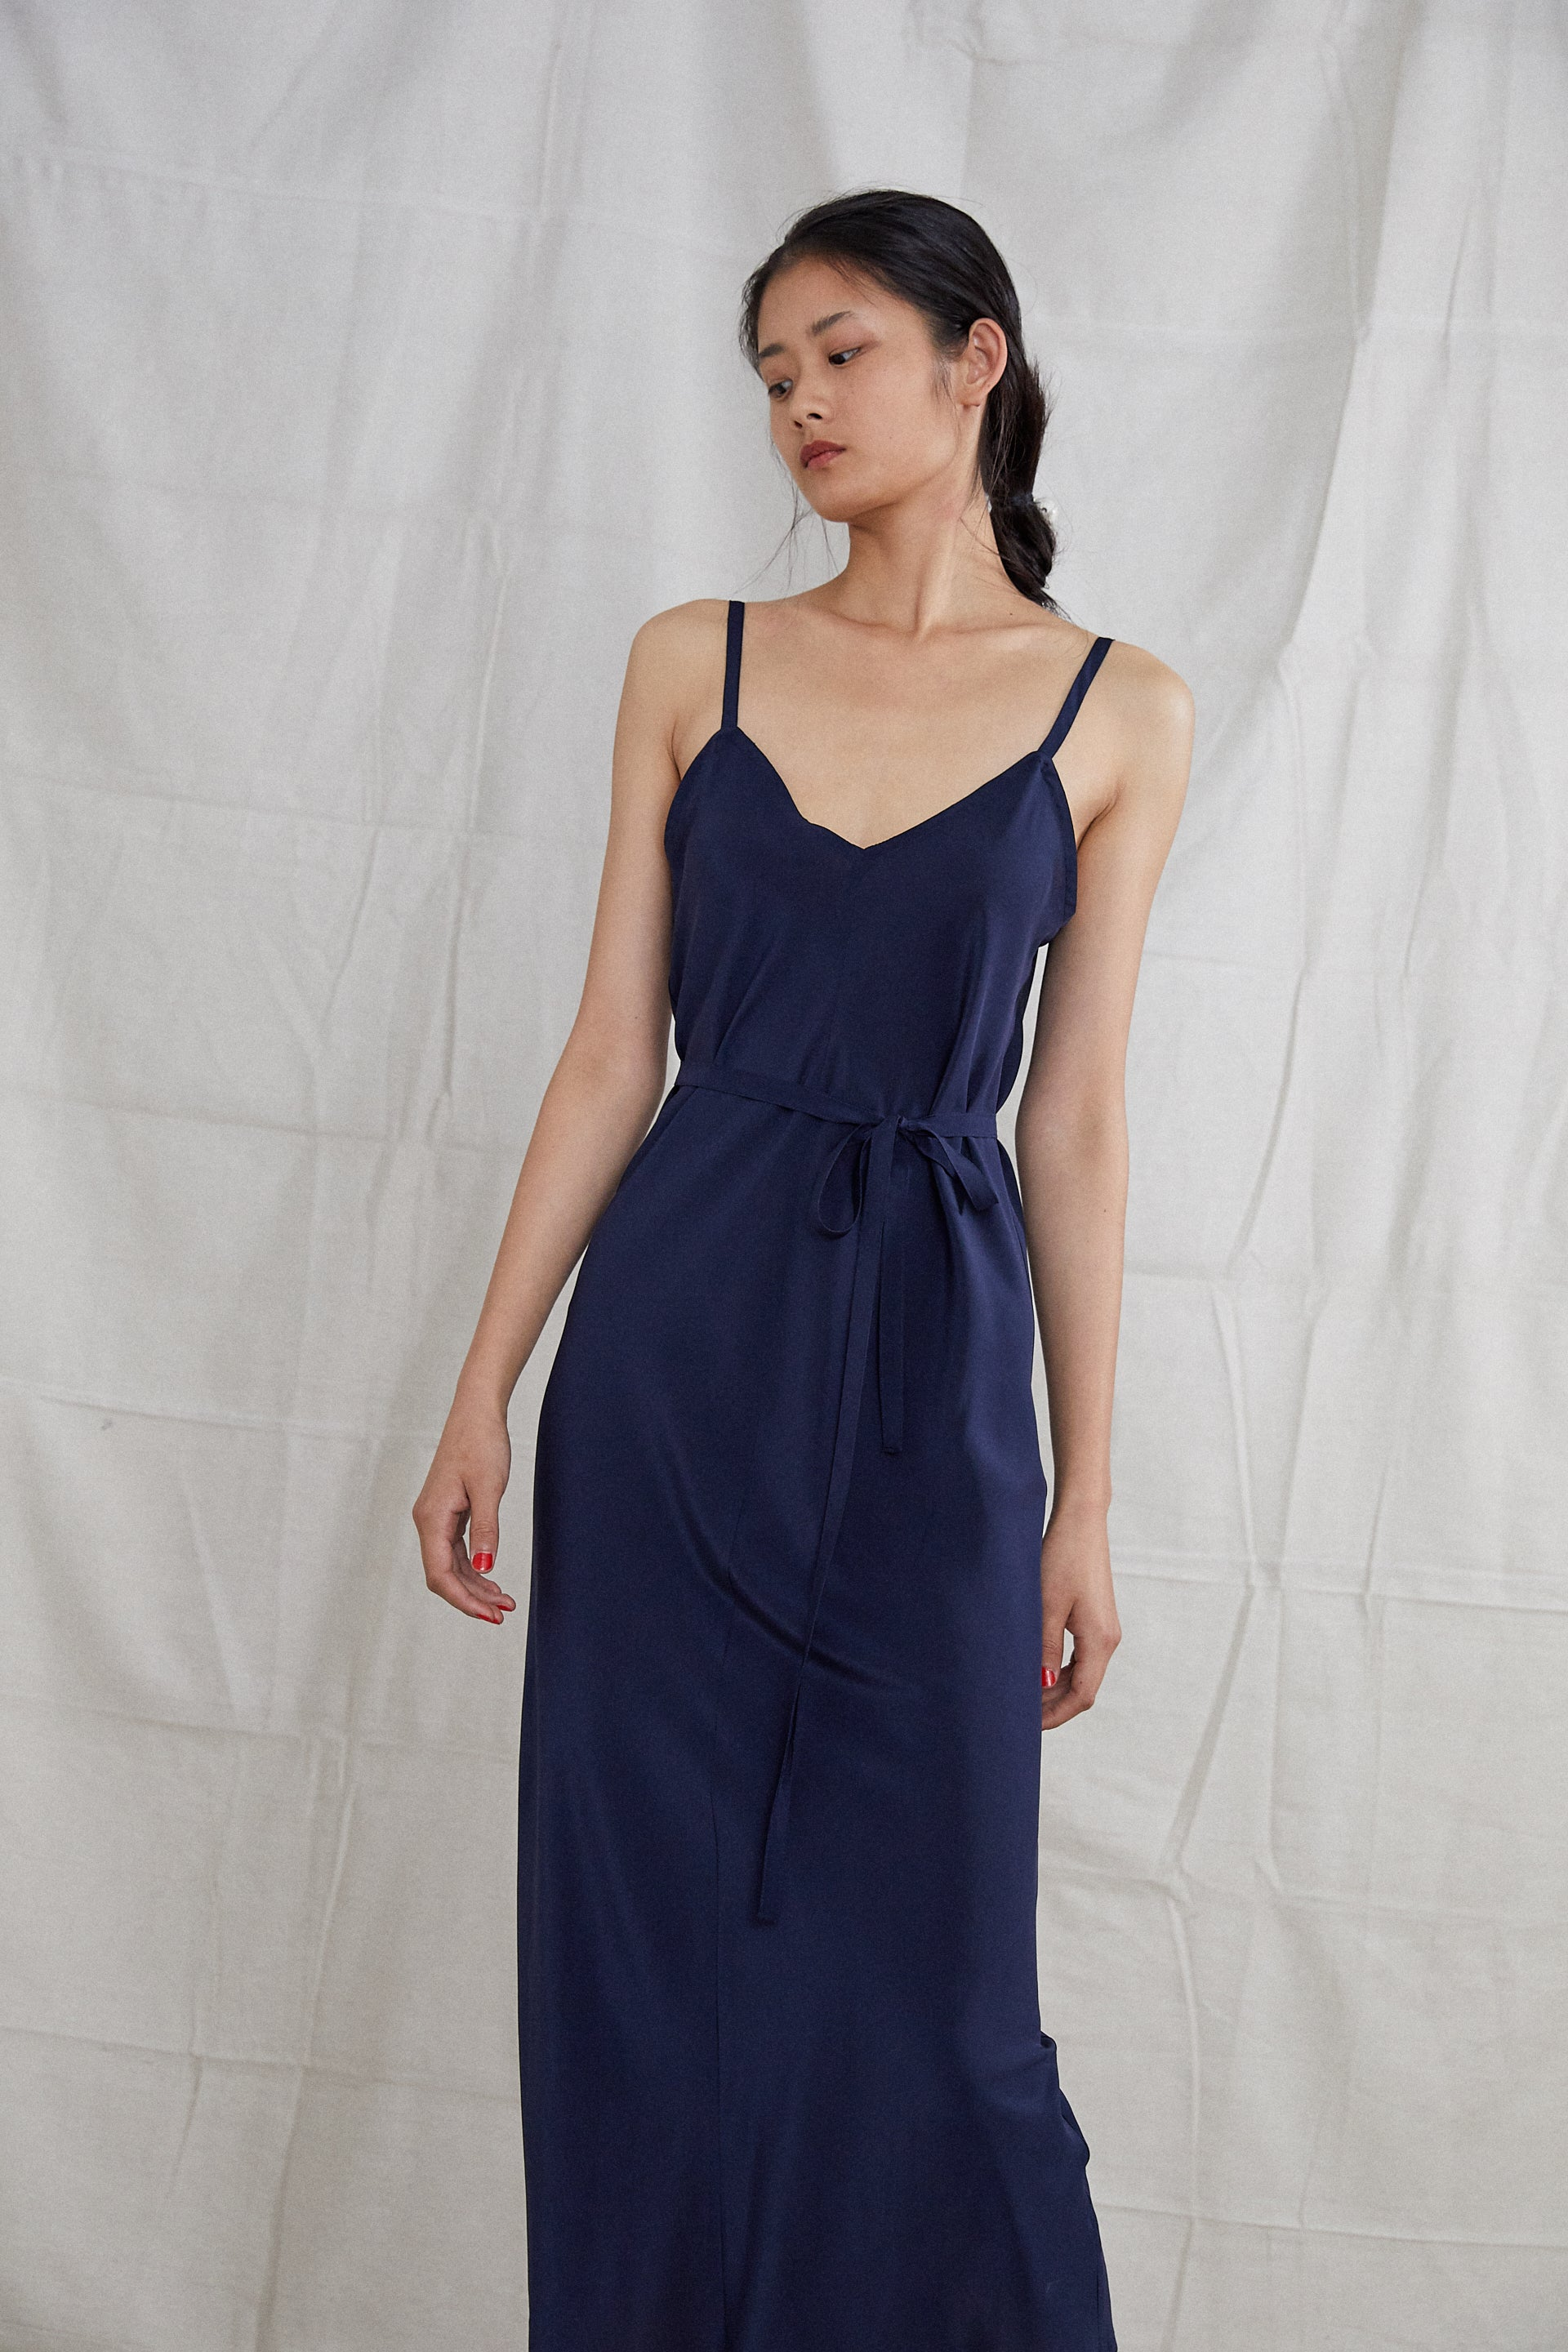 Elem Dress - Indigo Silk